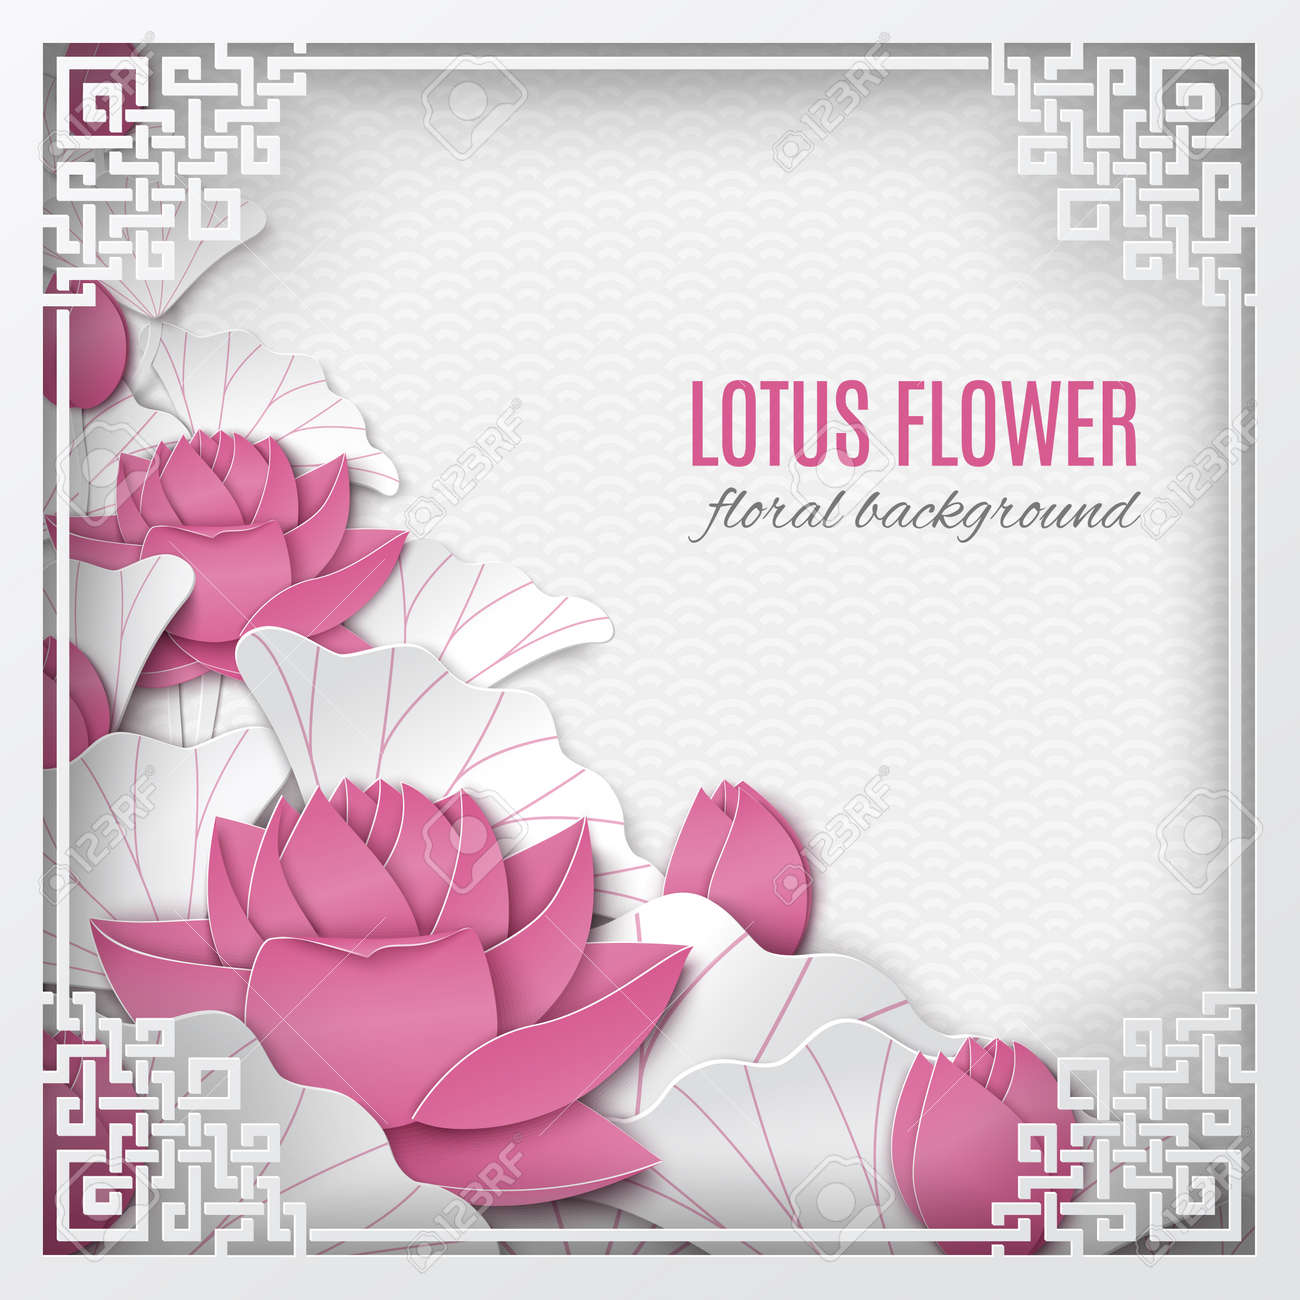 Oriental Floral Background With Pink Lotus Flowers And Ornate